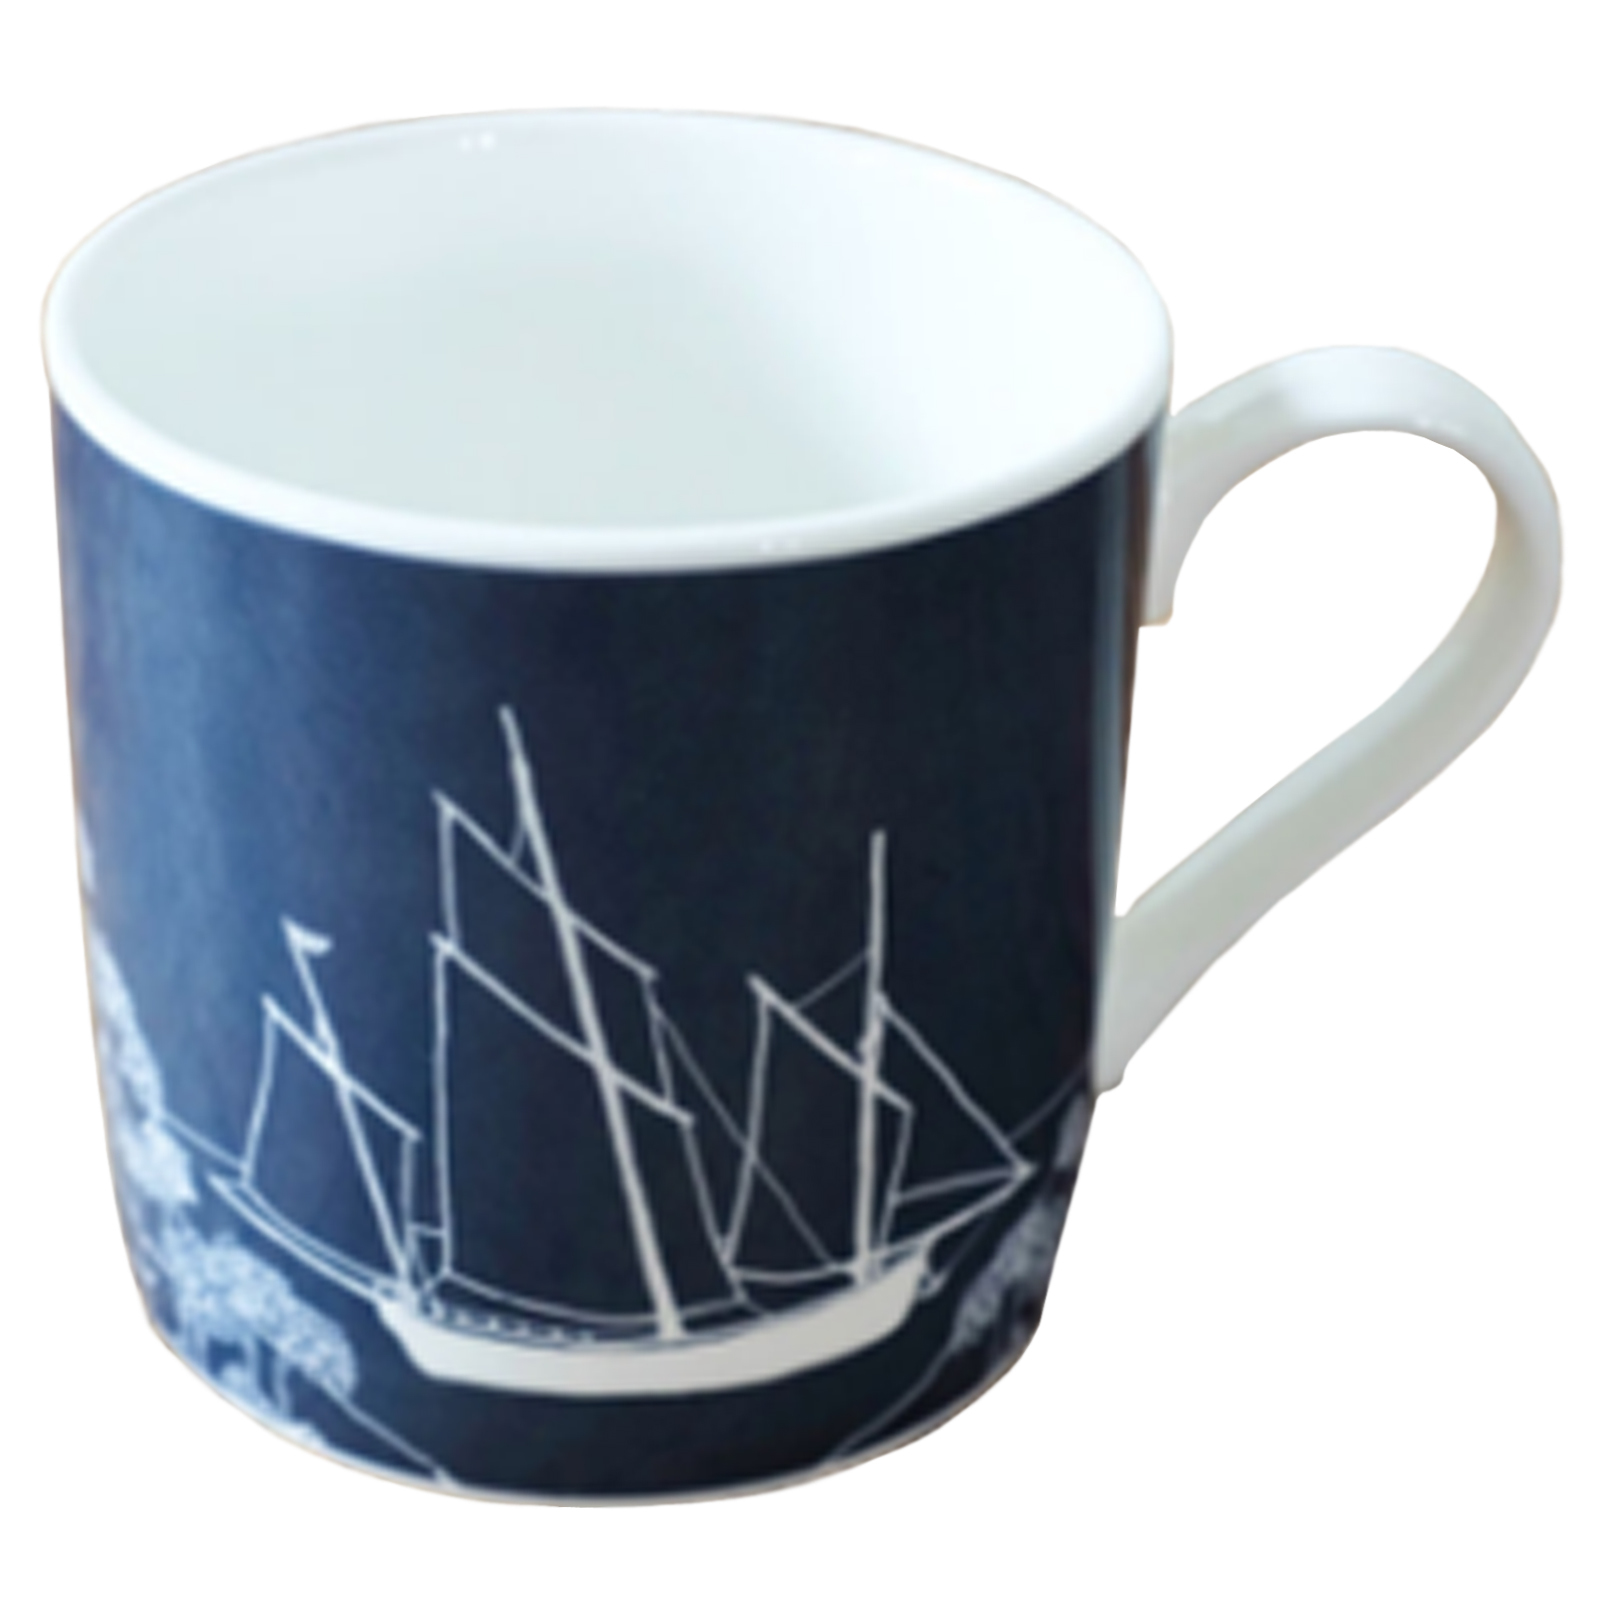 Fine Bone China Mug with Cornish Privateer Boat in Deep Blue - Seafarers Collection Limited Edition by Helen Round